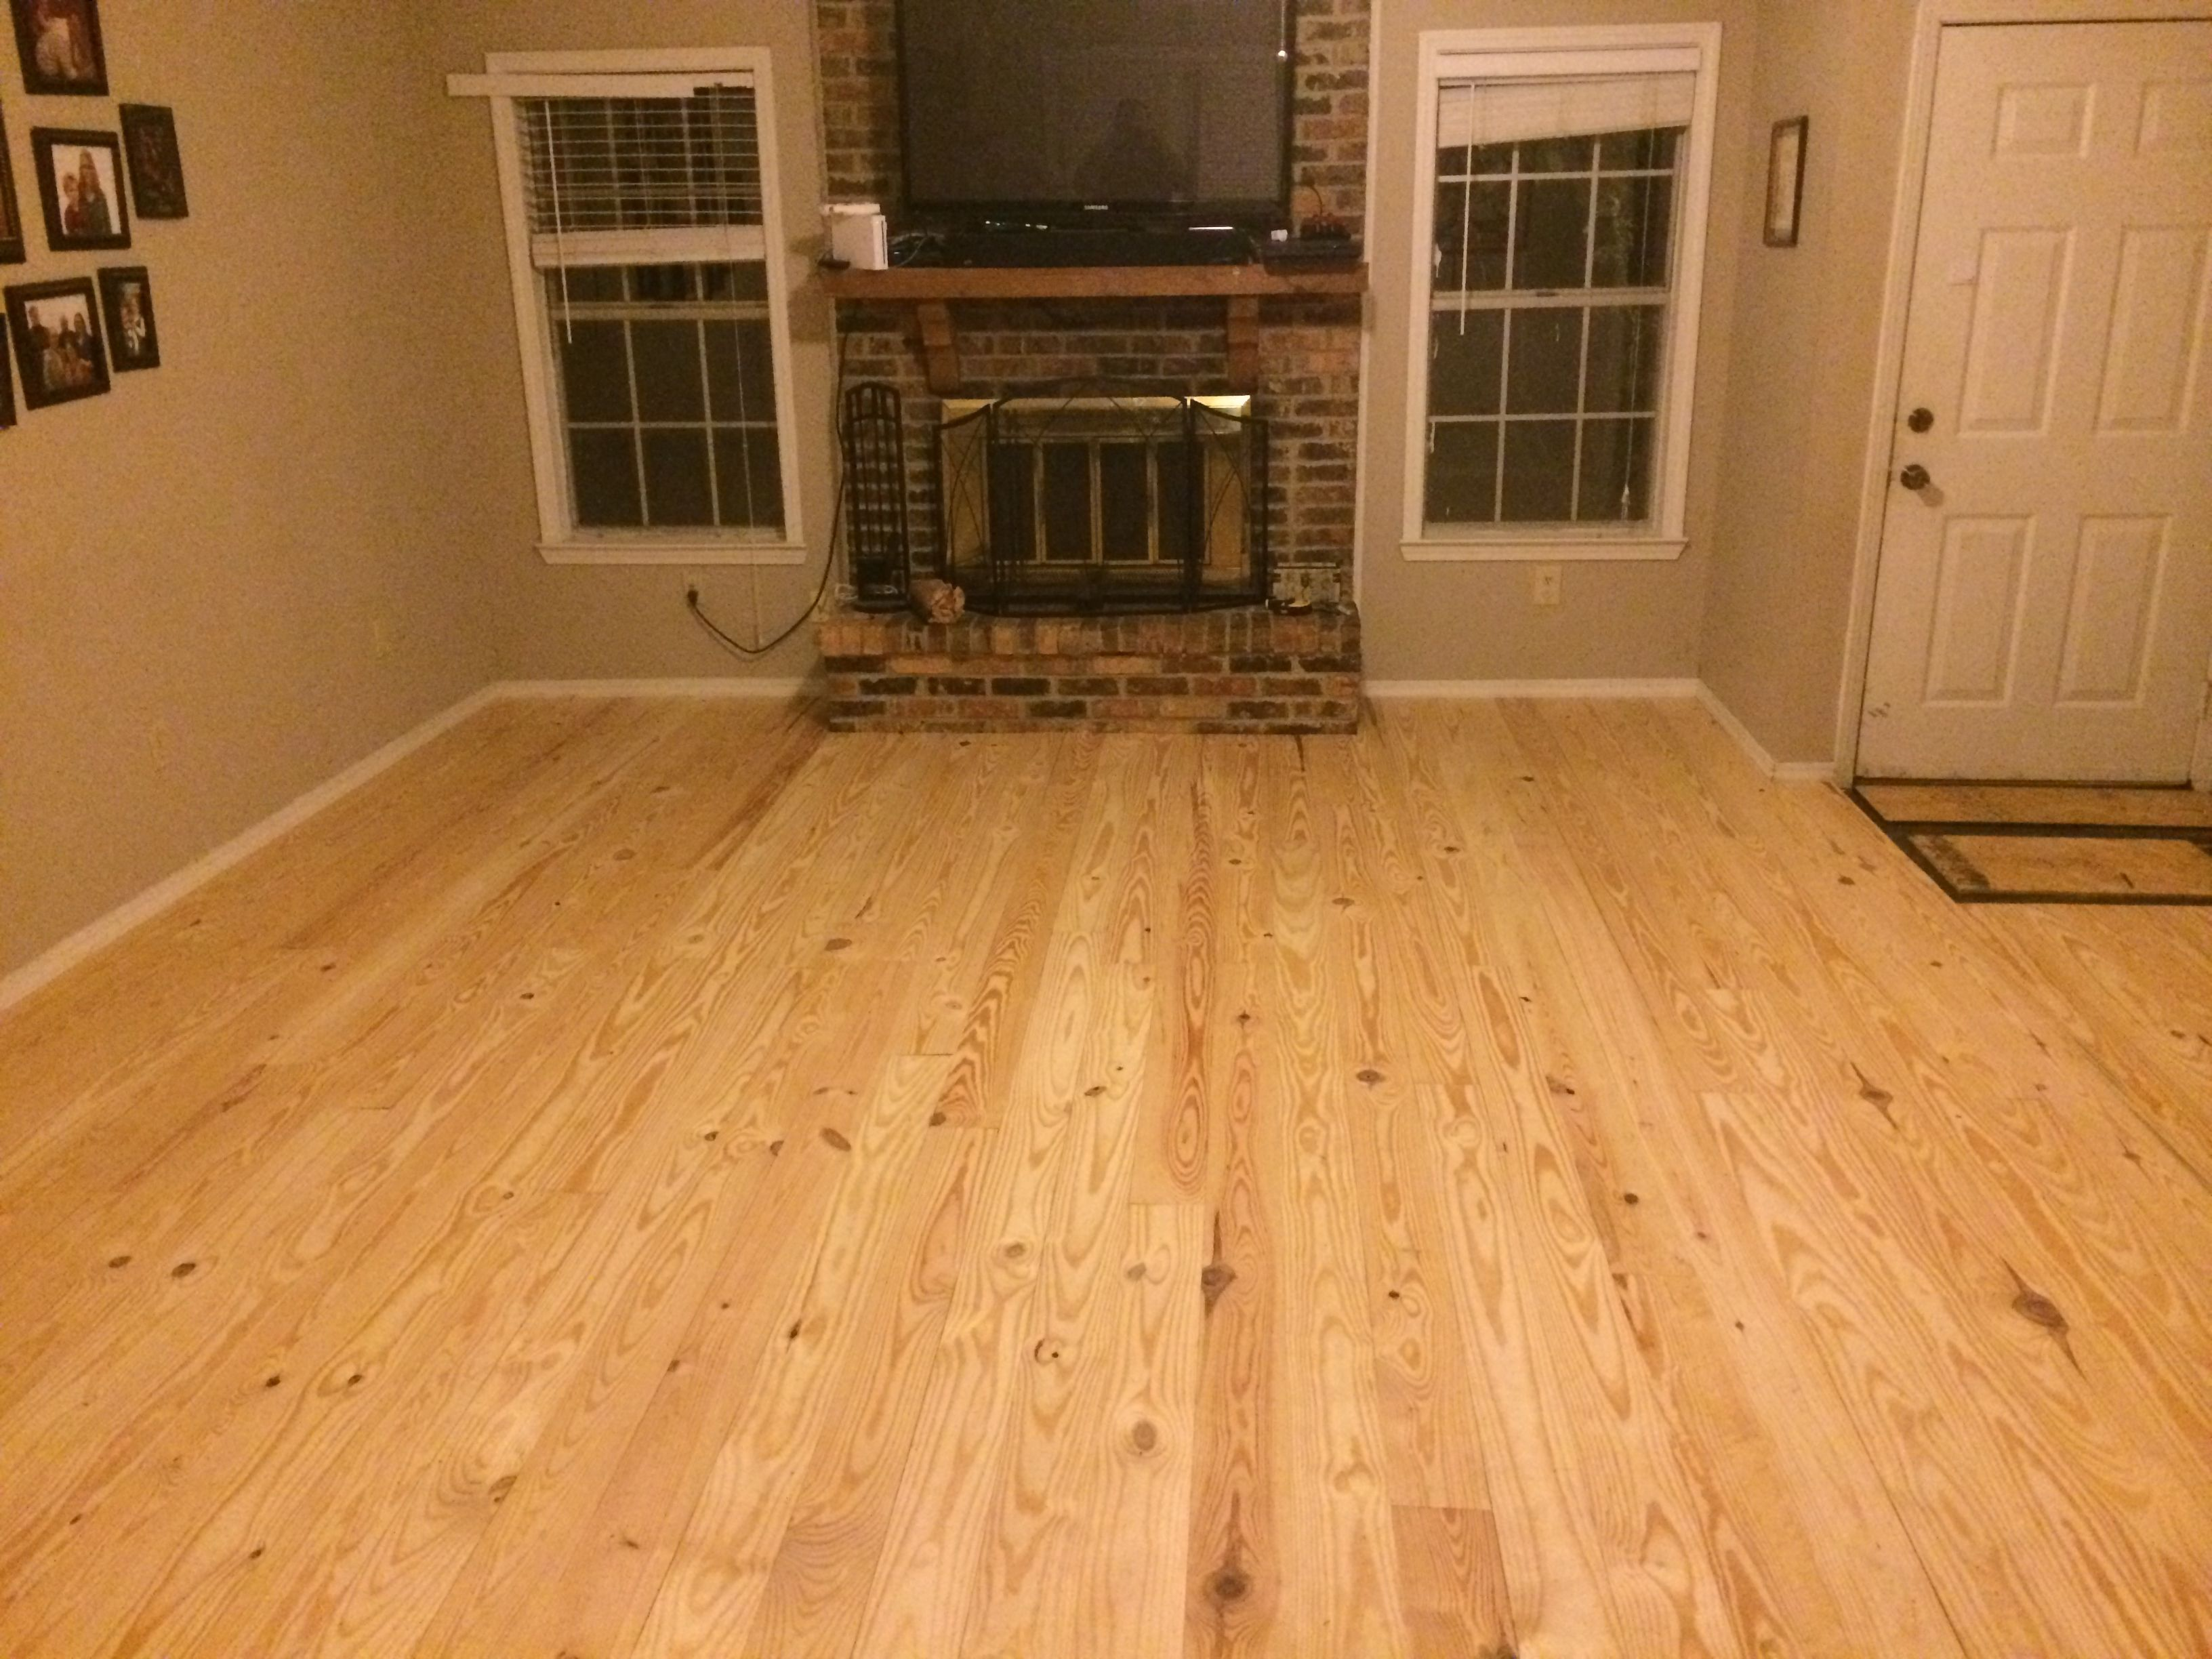 Rustic Knotty Pine Flooring From Southern Wood Specialties In Flomaton Al 251 296 2556 Just 1 05 Per Sq Ft Unf Pine Floors Pine Wood Flooring Wood Floors